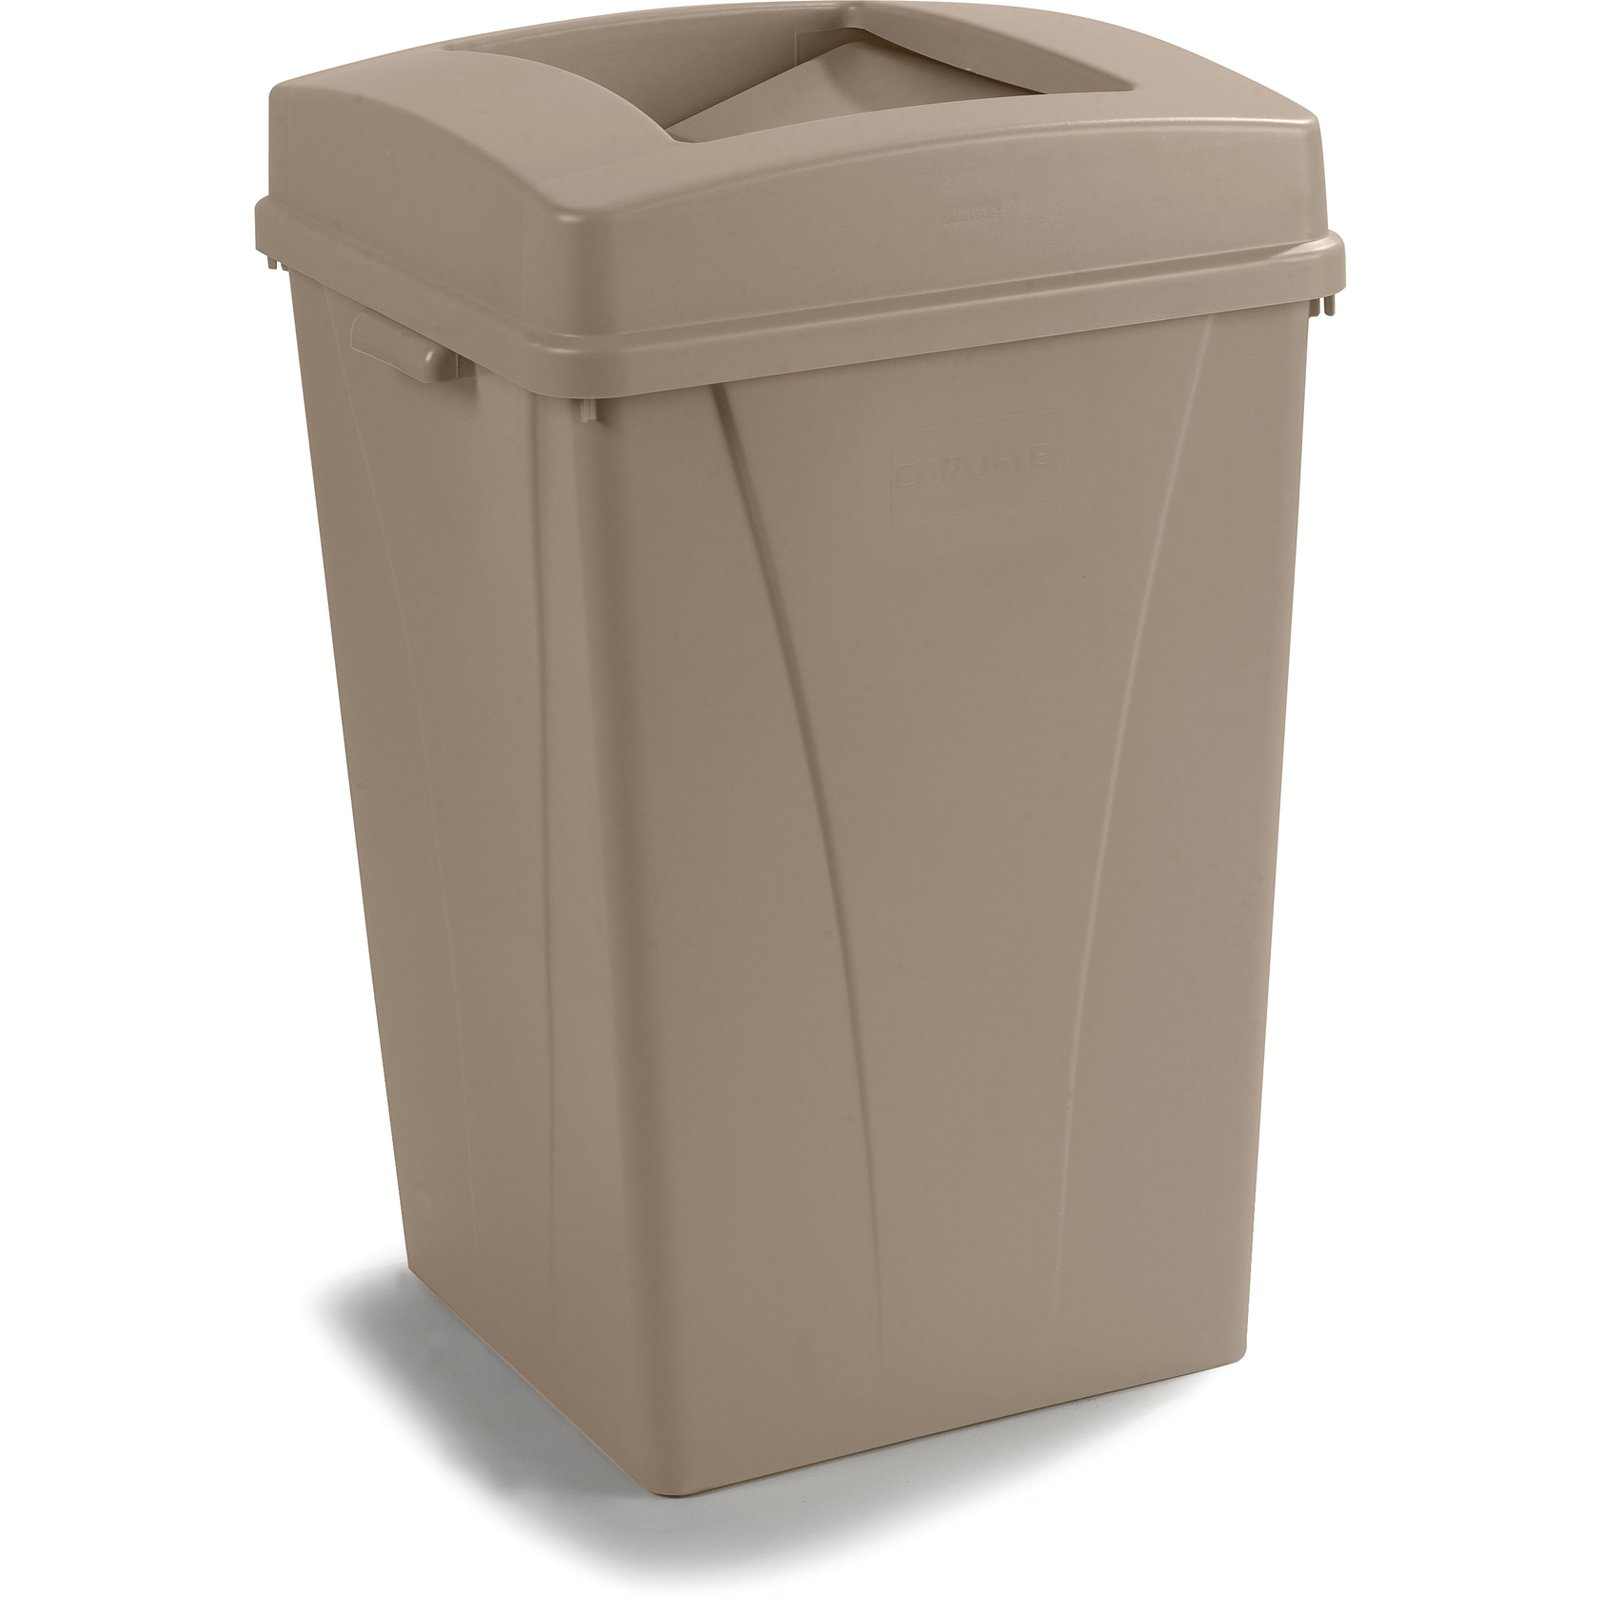 34393506 Centurian Square Waste Container Trash Can 35 Gallon